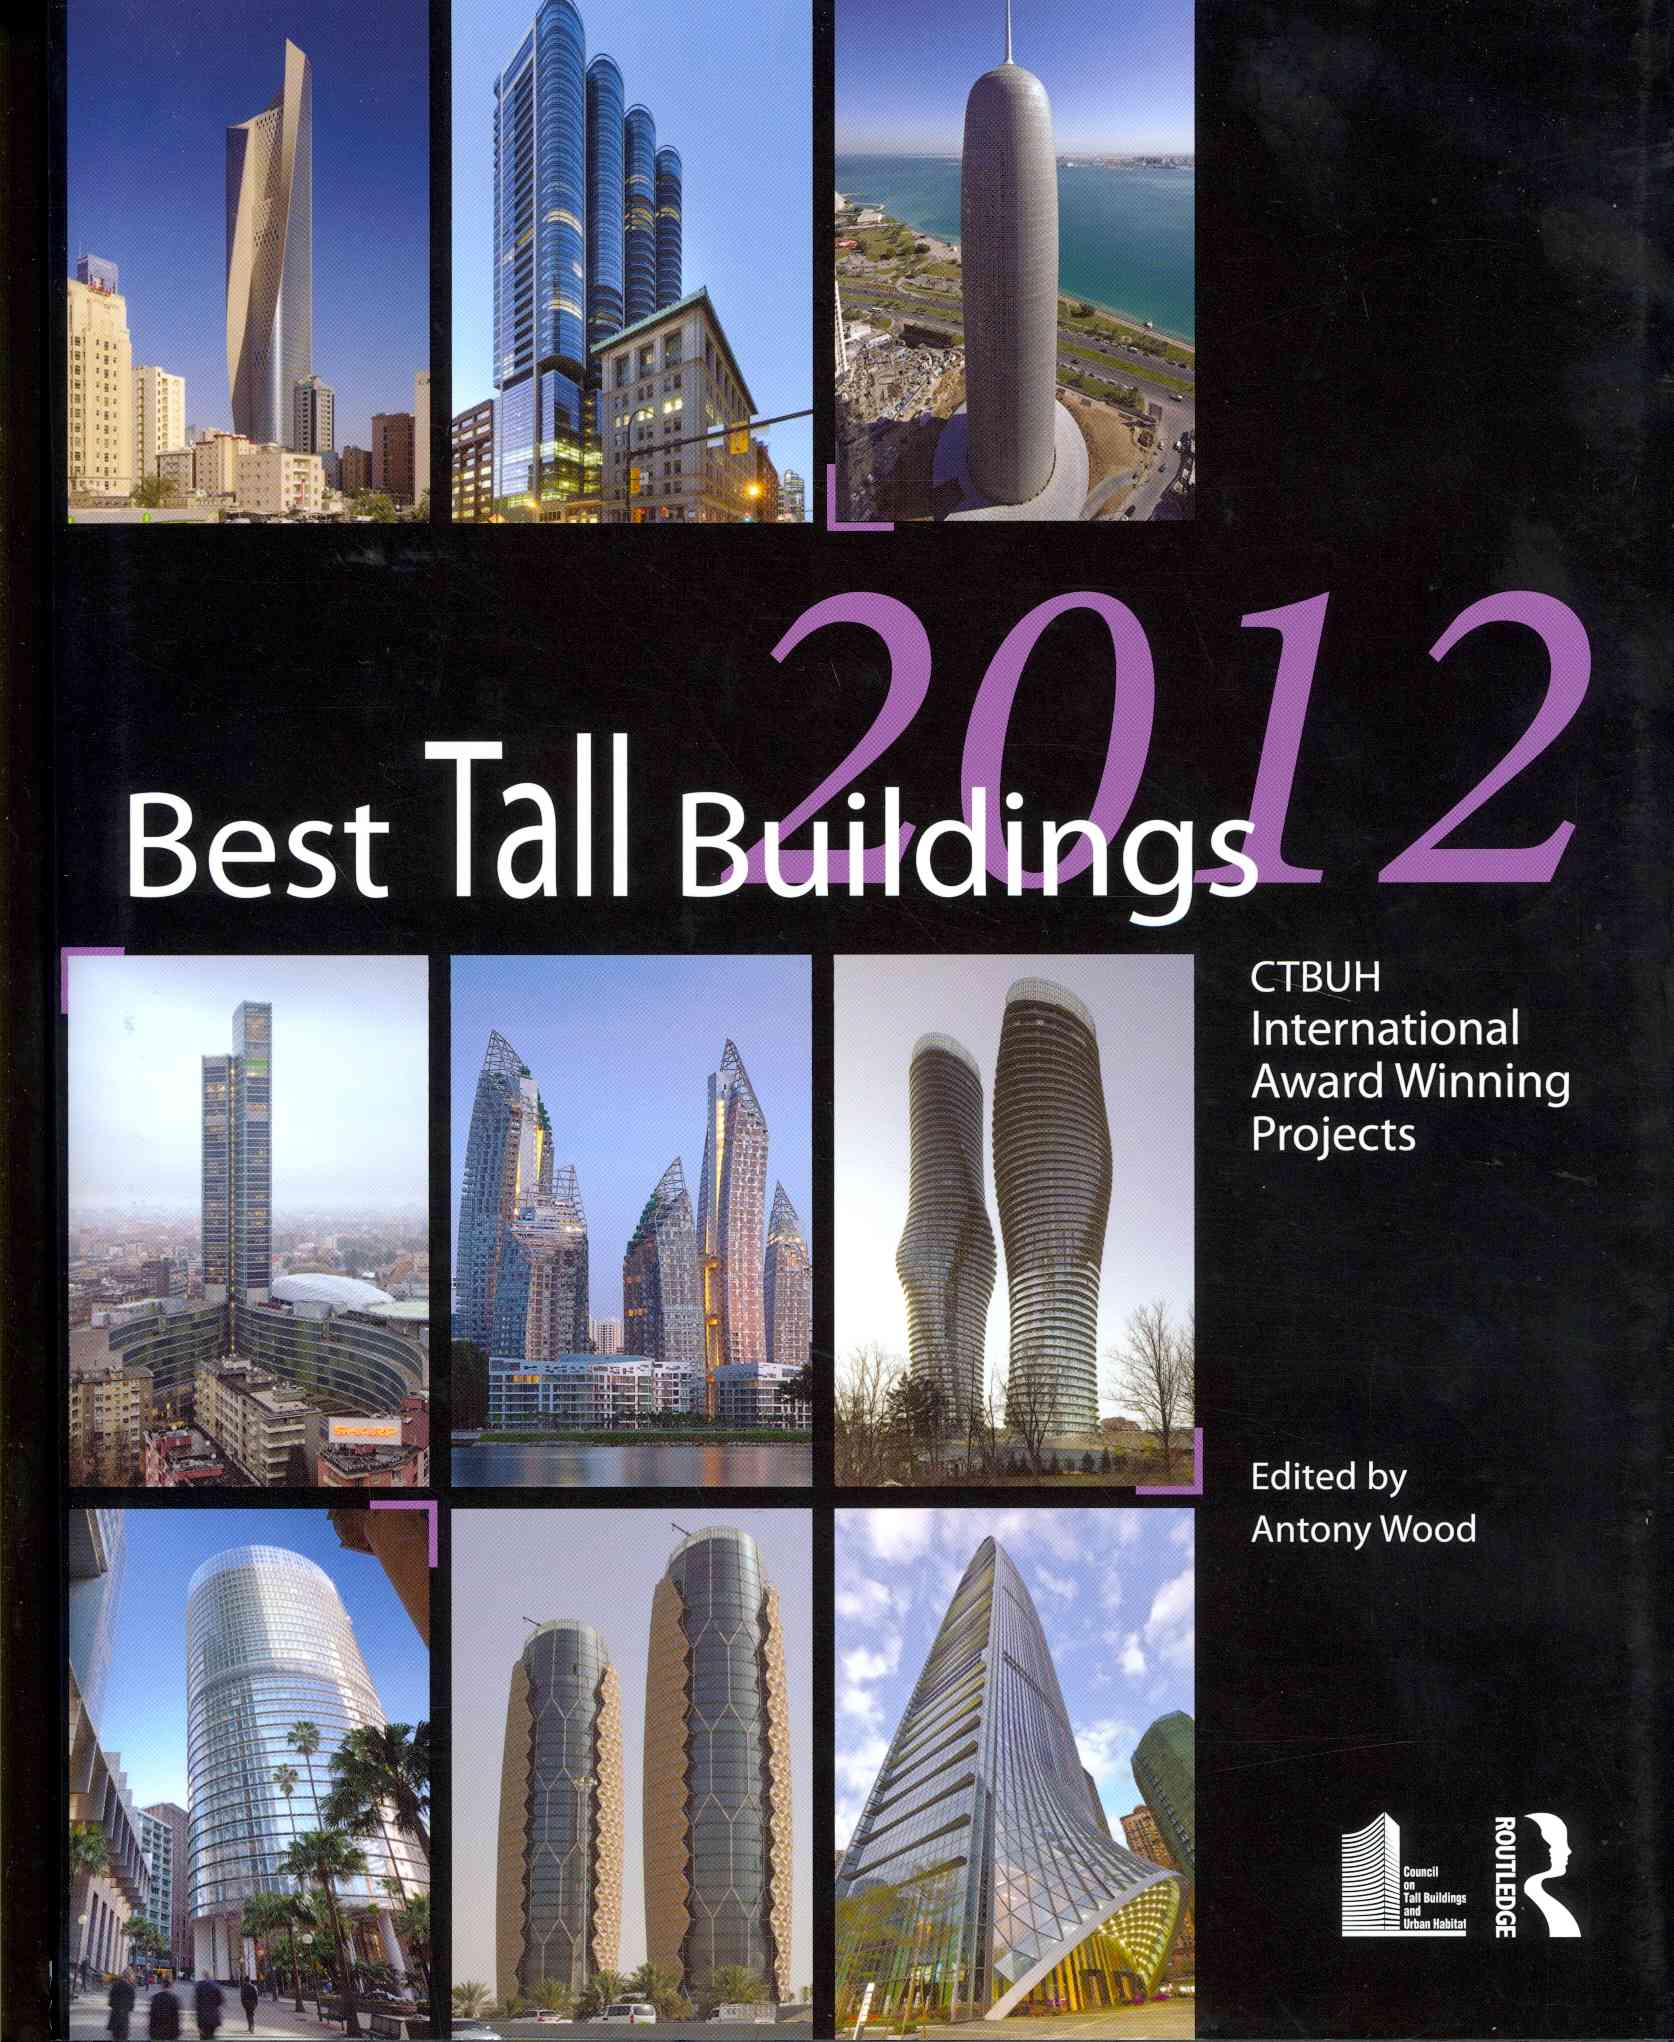 Best Tall Buildings 2012: CTBUH International Award Winning Projects (Hardcover)